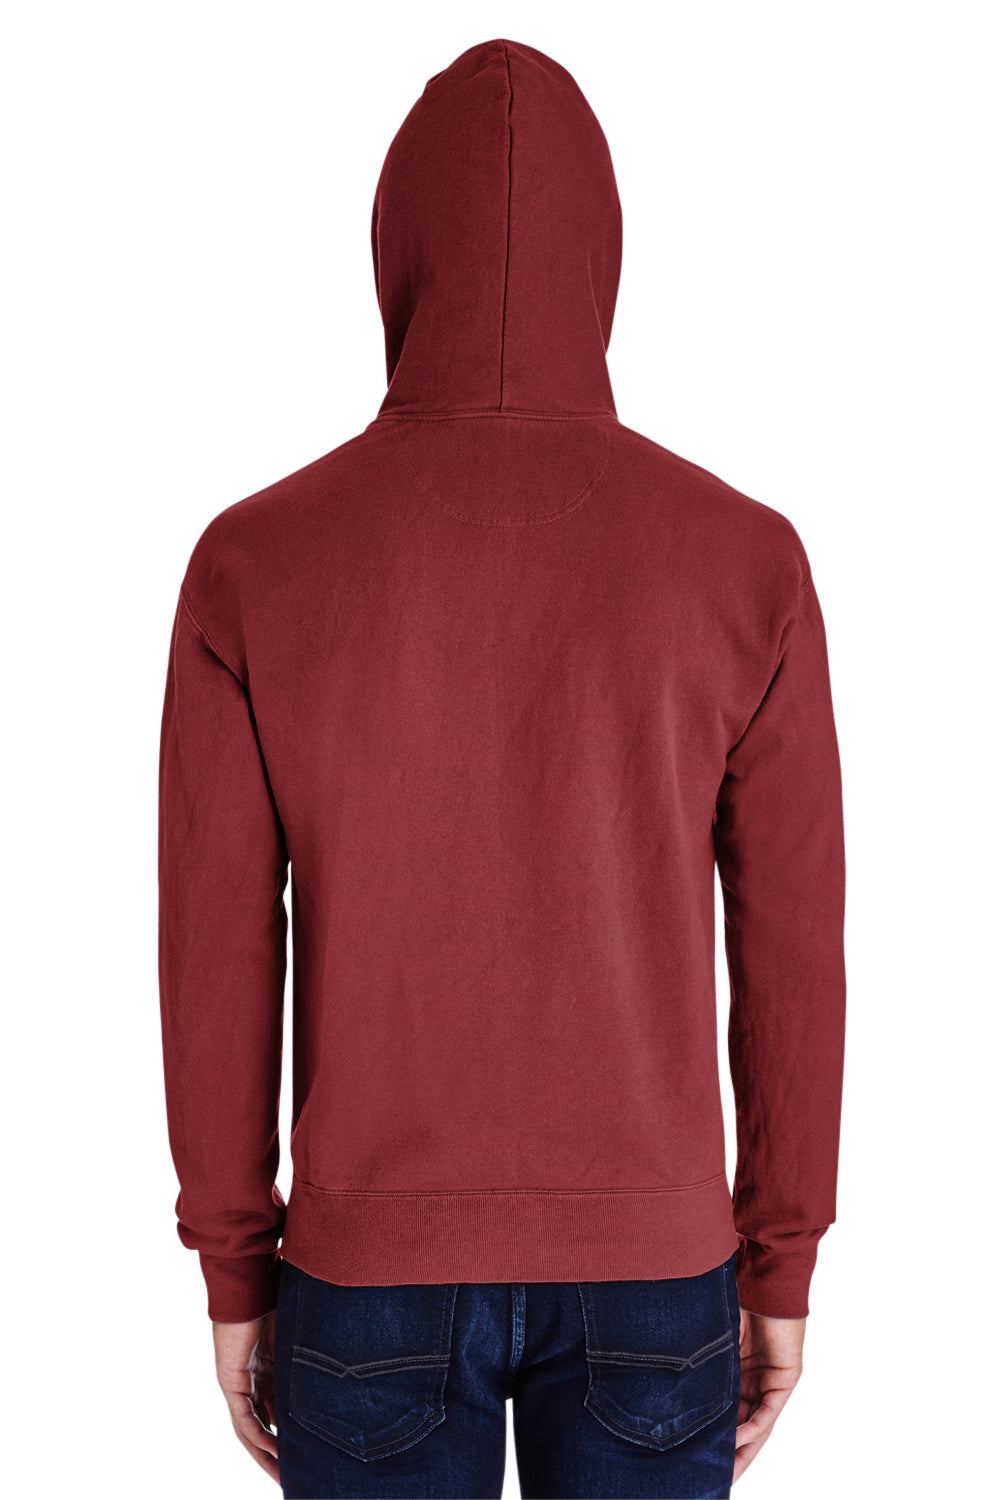 ComfortWash by Hanes GDH450 Hooded Sweatshirt Hoodie Cayenne Red Back